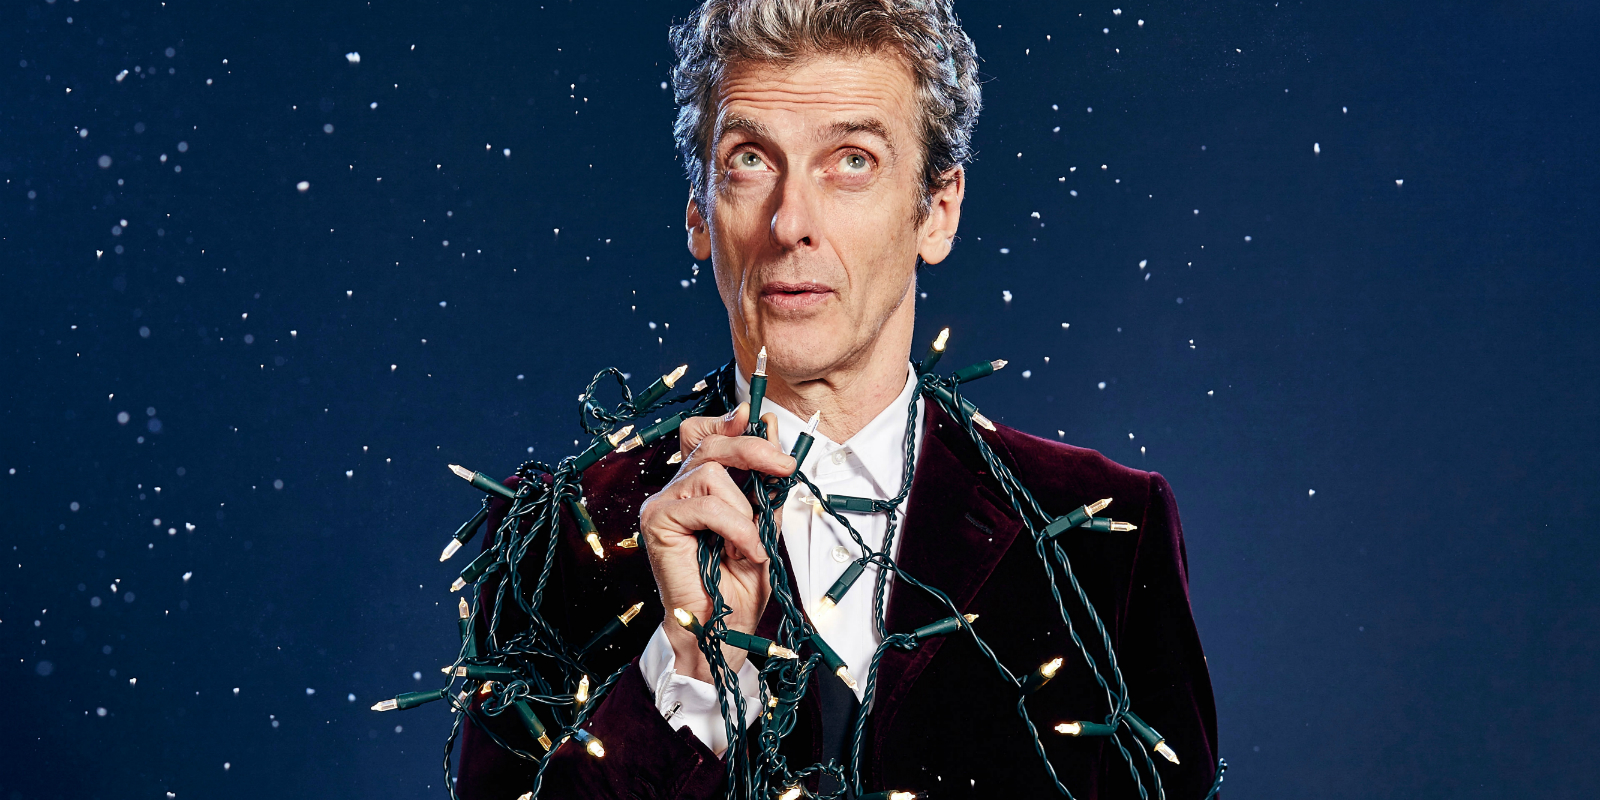 A present for 'Doctor Who' fans: 2016 'Christmas Special' will get ...